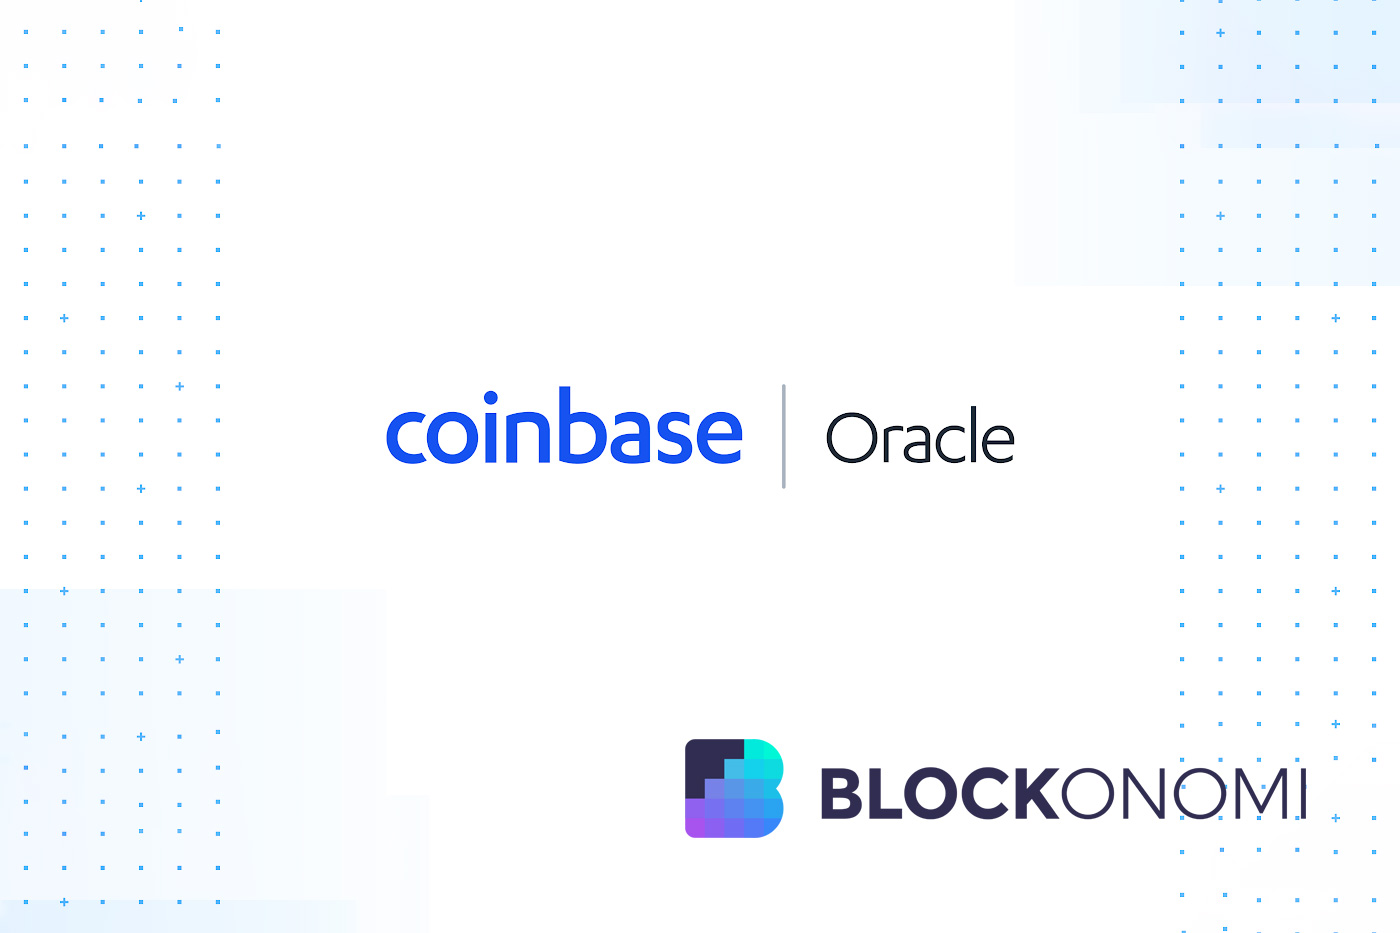 Meet the Coinbase Price Oracle: BTC & ETH Price Feeds for DeFi